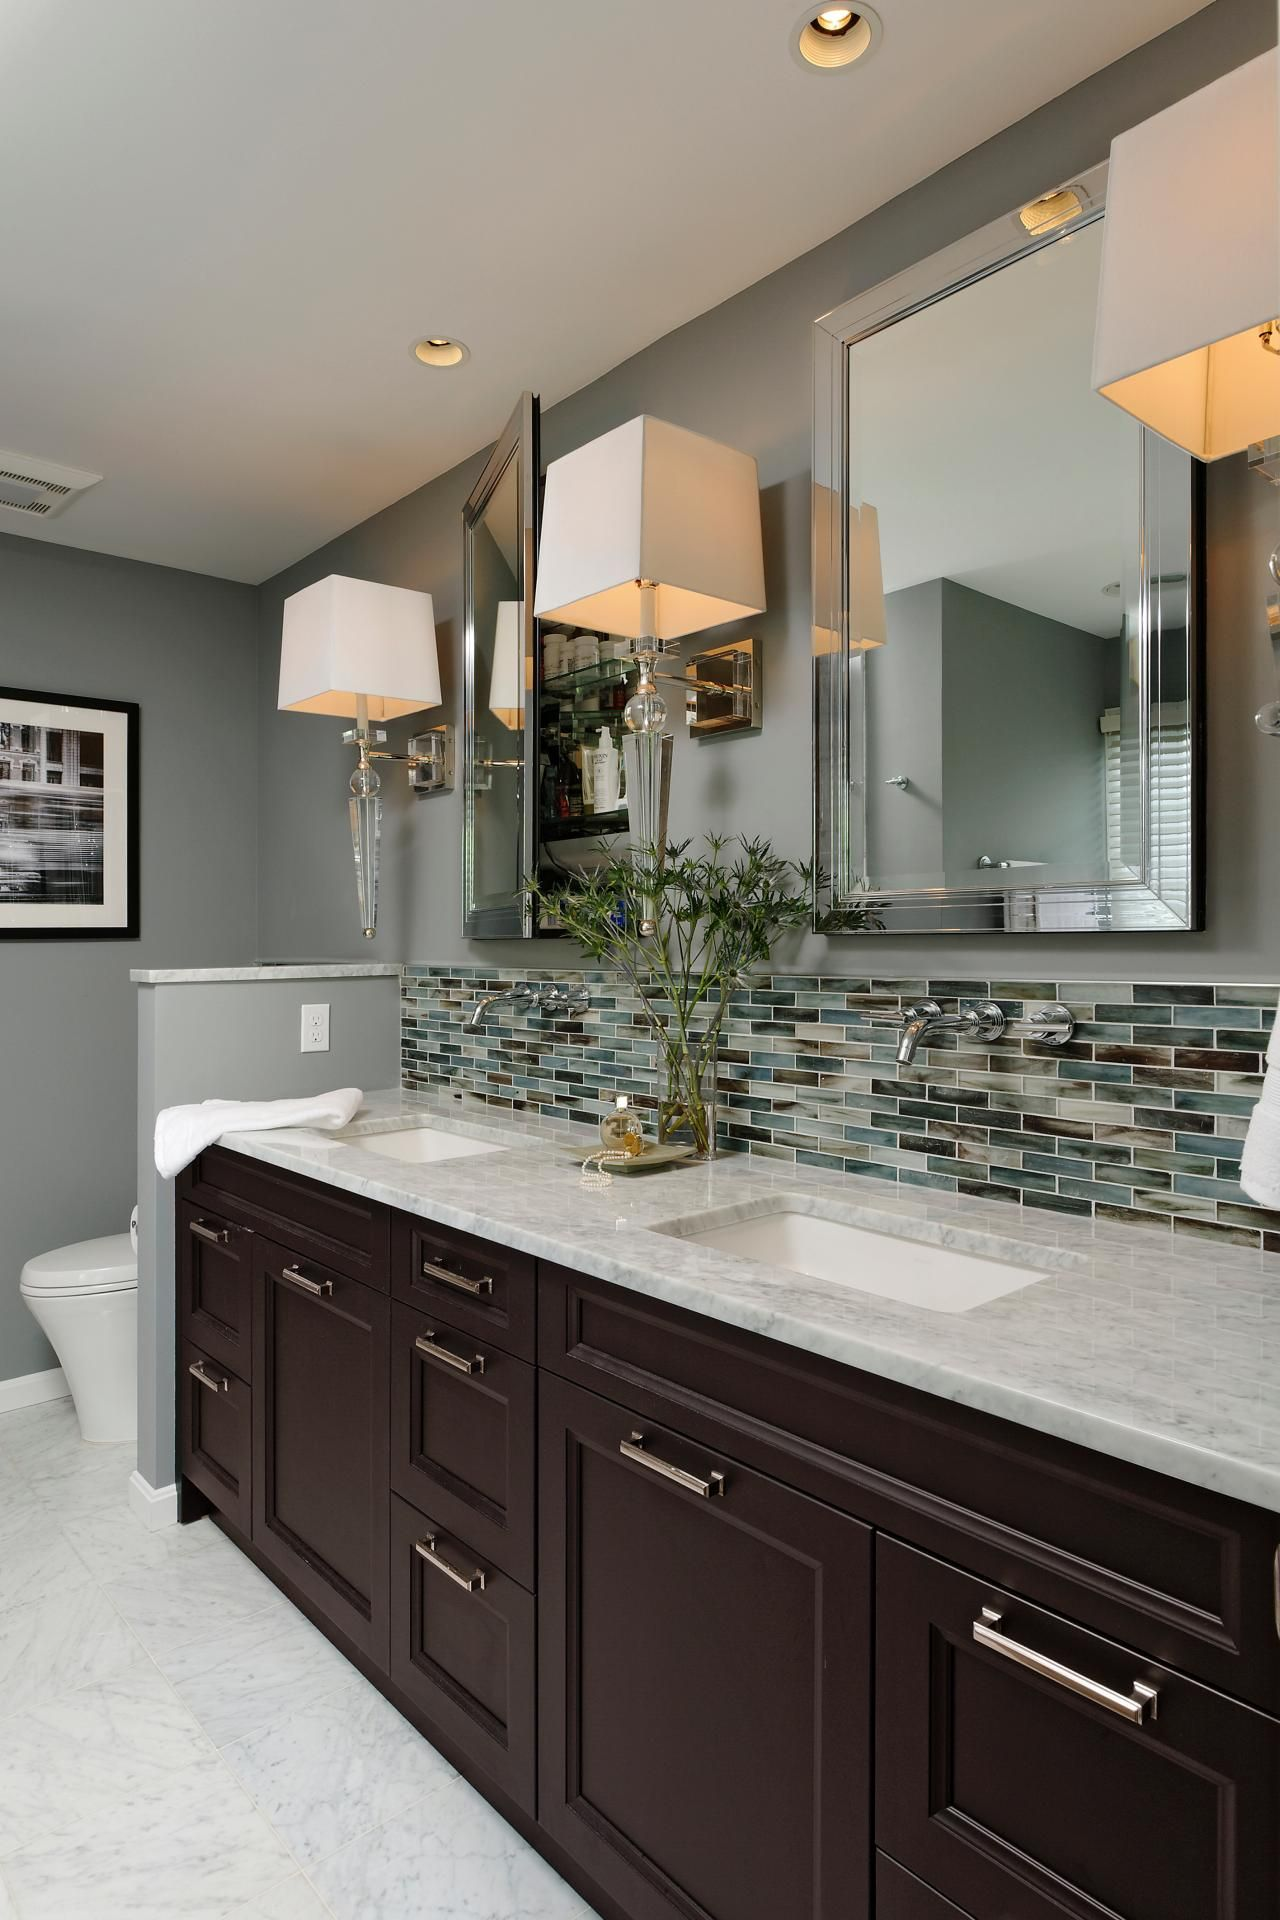 of cool full brushed for as well modern uplight finished steel lights tech recessed light with lighting ceiling plus design chic and above large madisson home also boxi vanity decorating briliant ideas fixtures size bathroom nickel